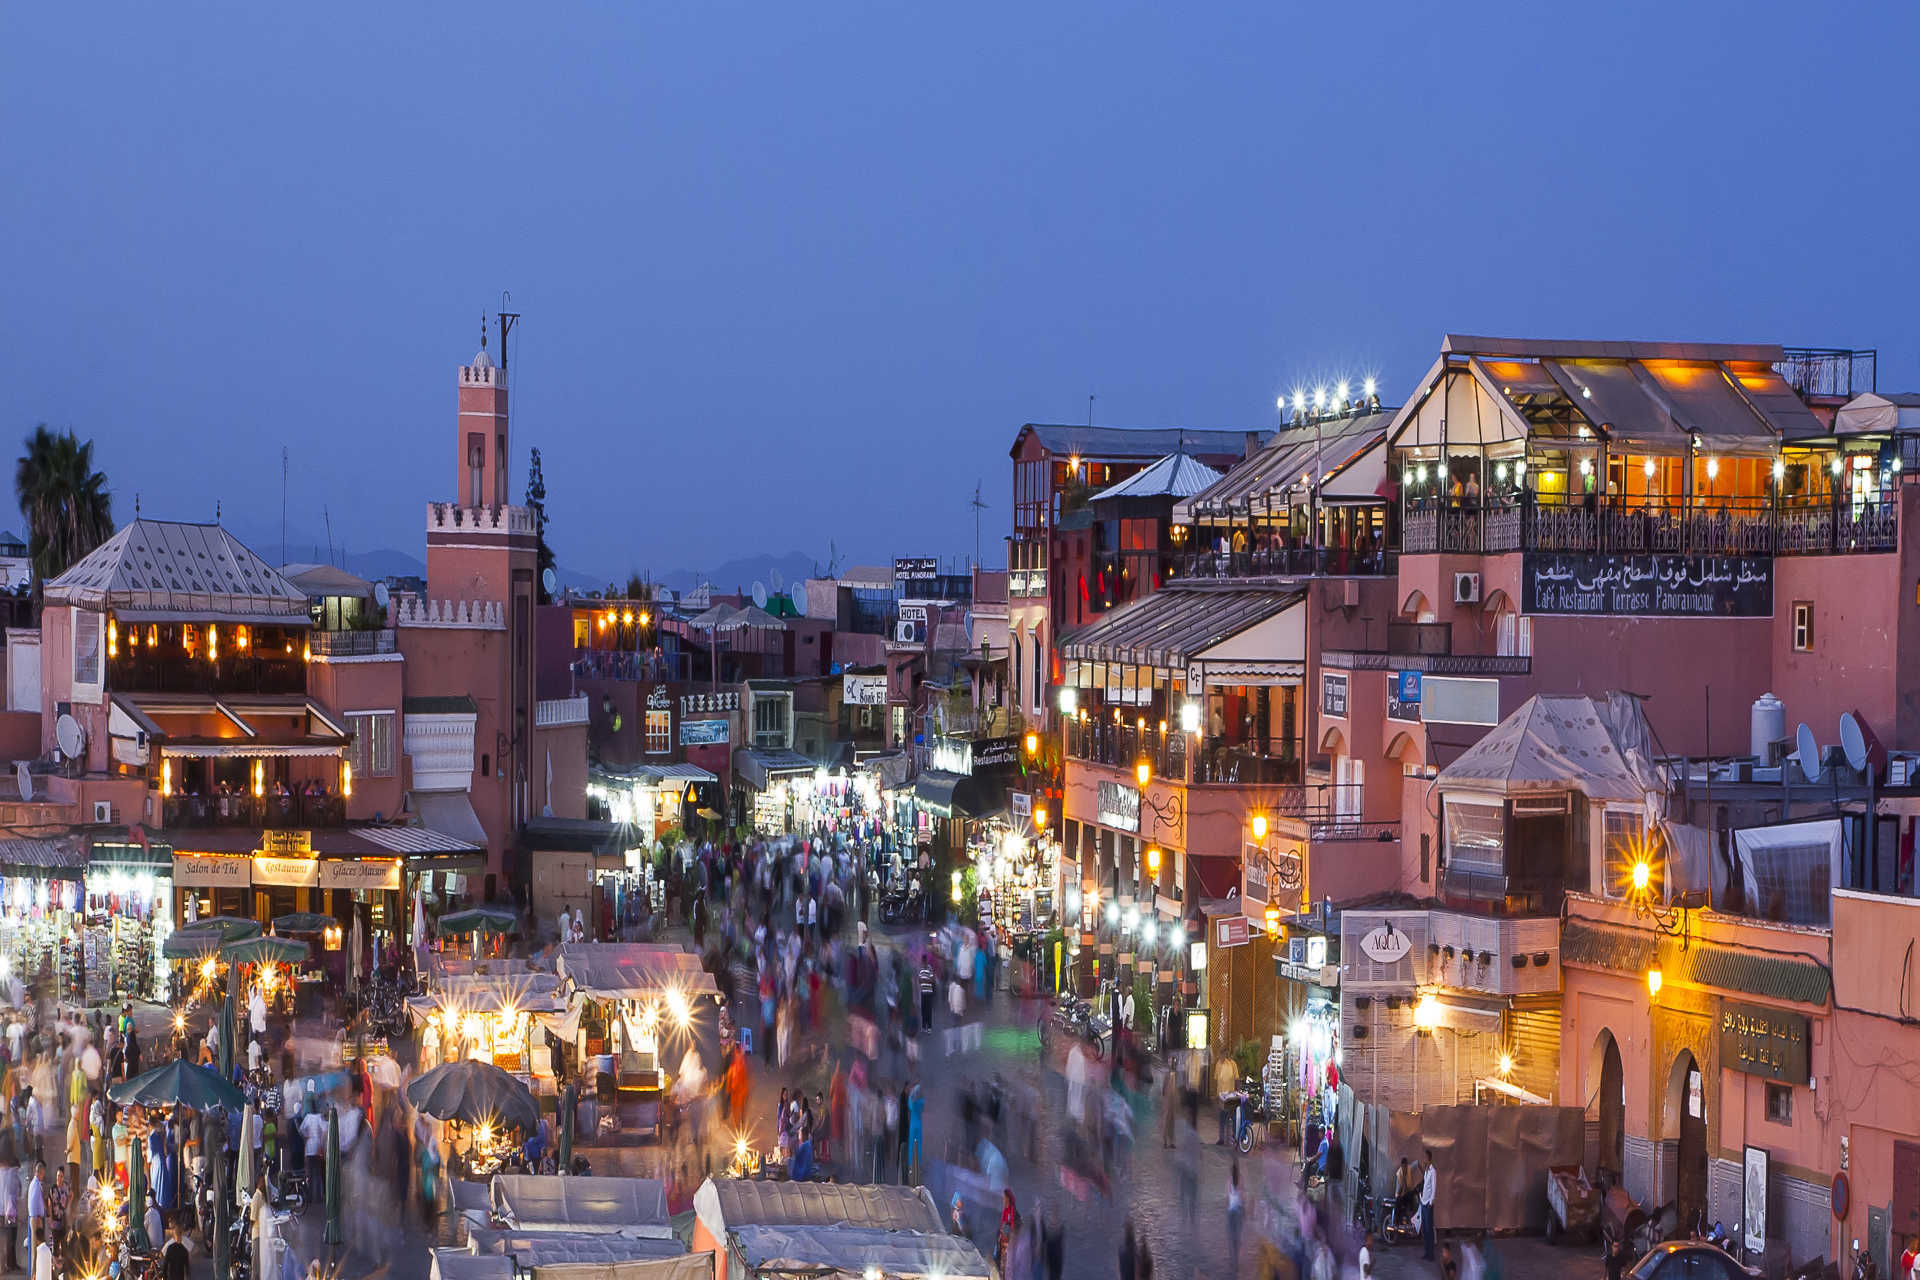 The Jemaa el Fna square, Marrakech starts here